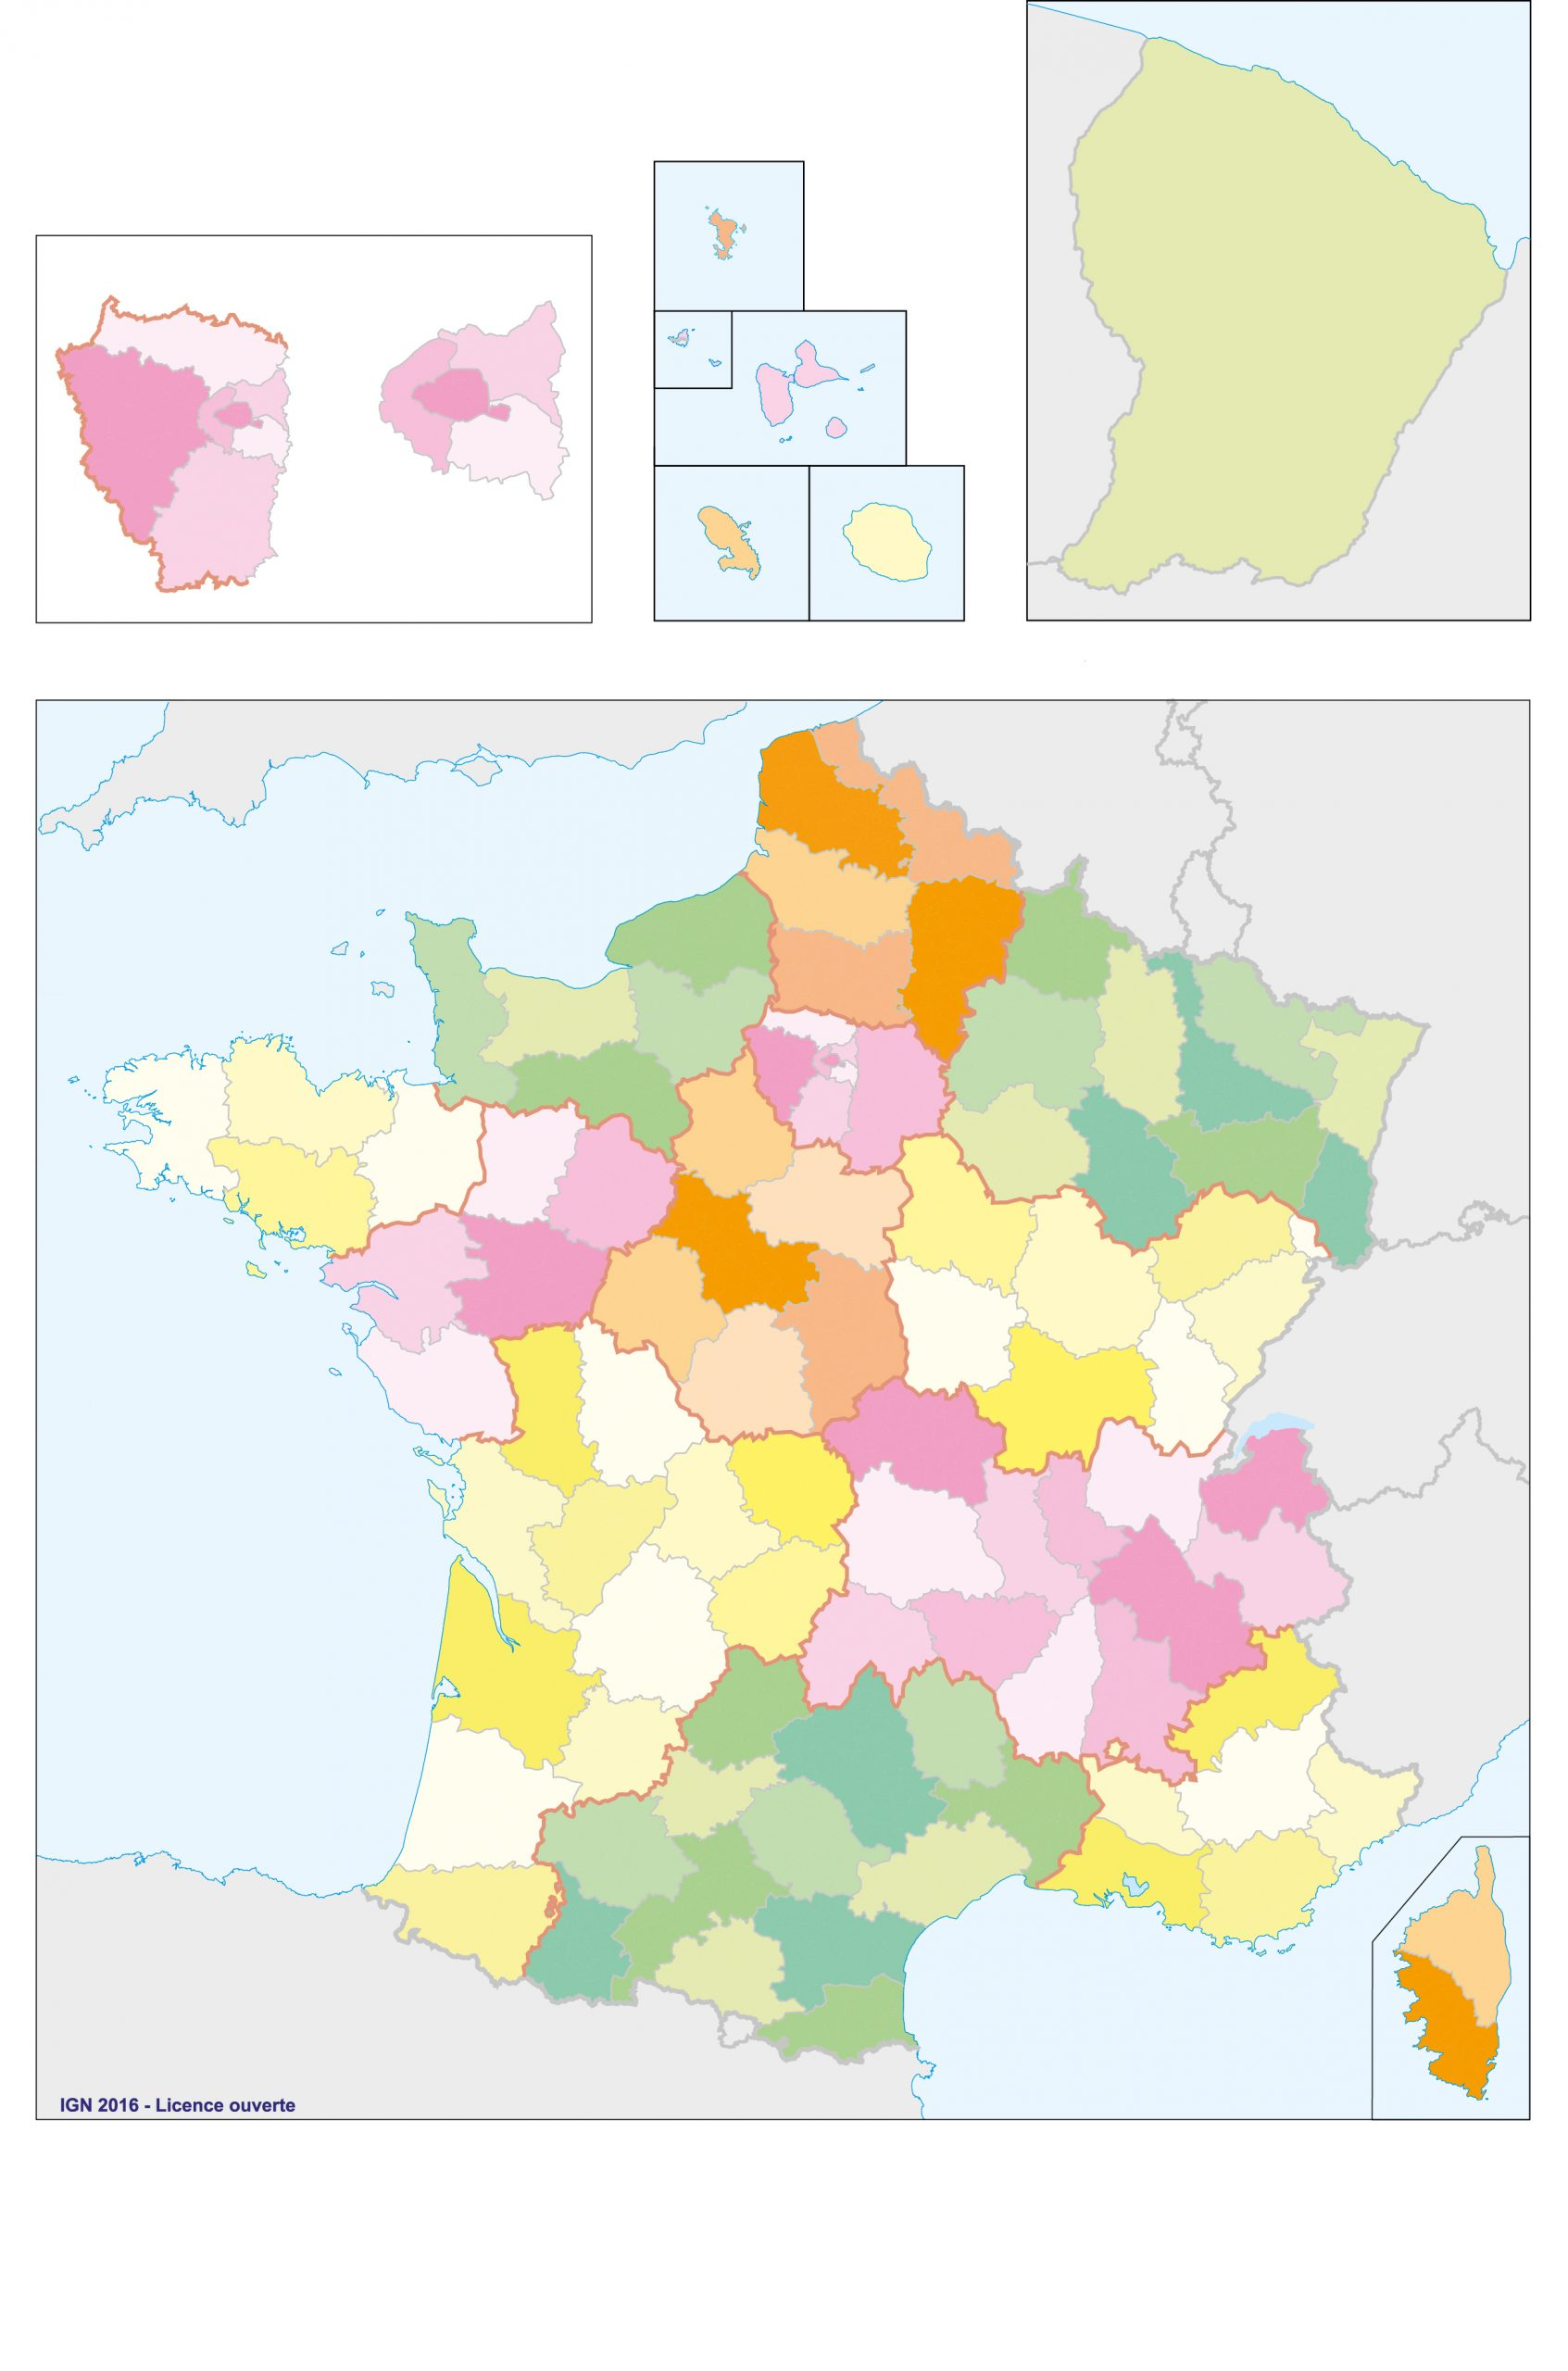 Fonds De Cartes | Éducation à Carte De La France Avec Ville